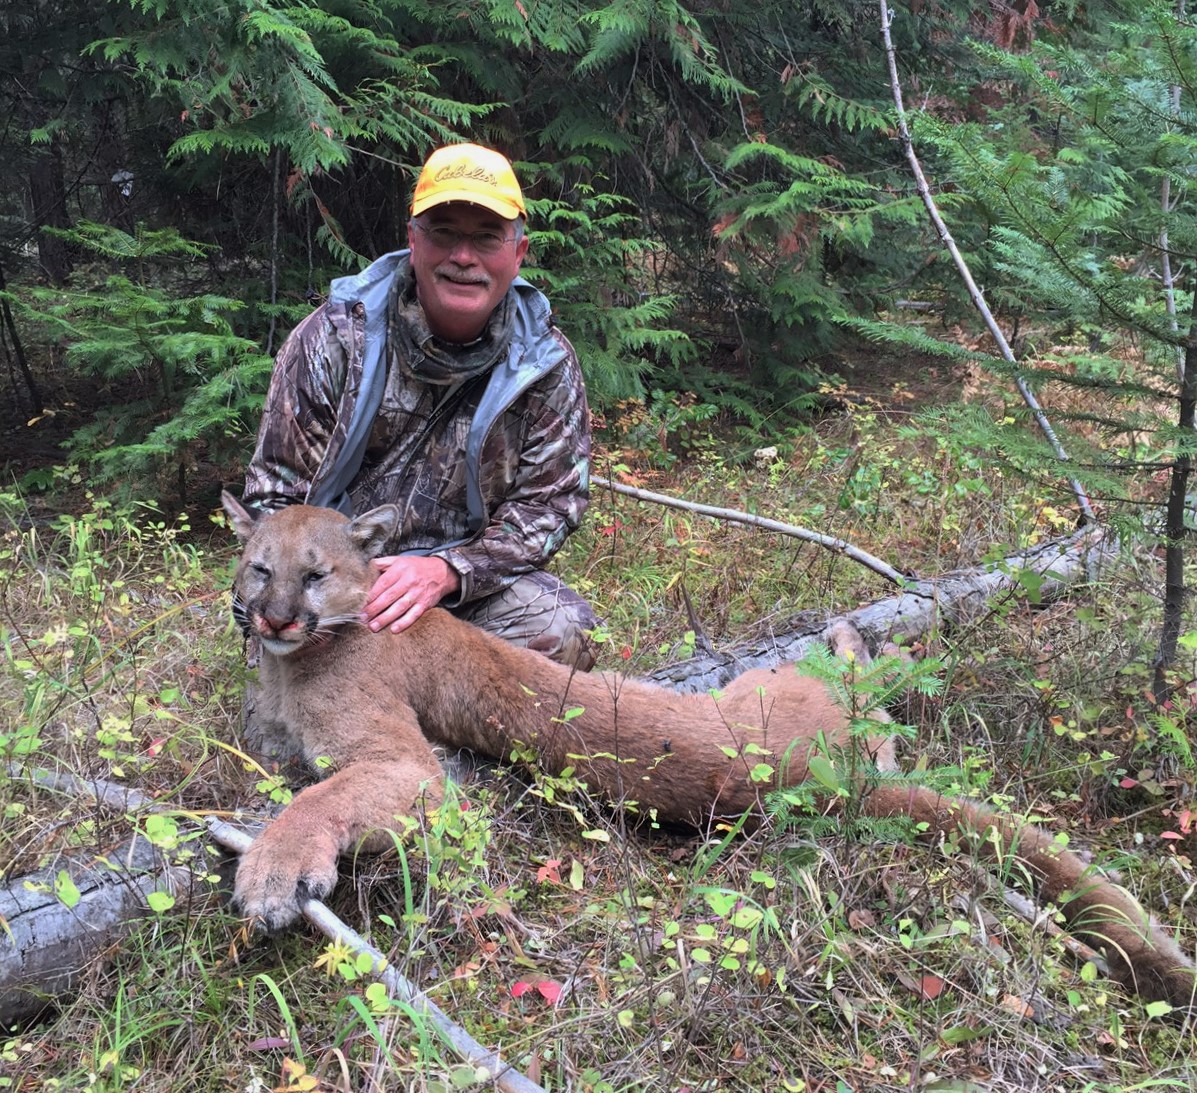 Todd Klement Of Spokane Shot A Cougar That Stalked Him While He Was Muzzleloader Hunting For